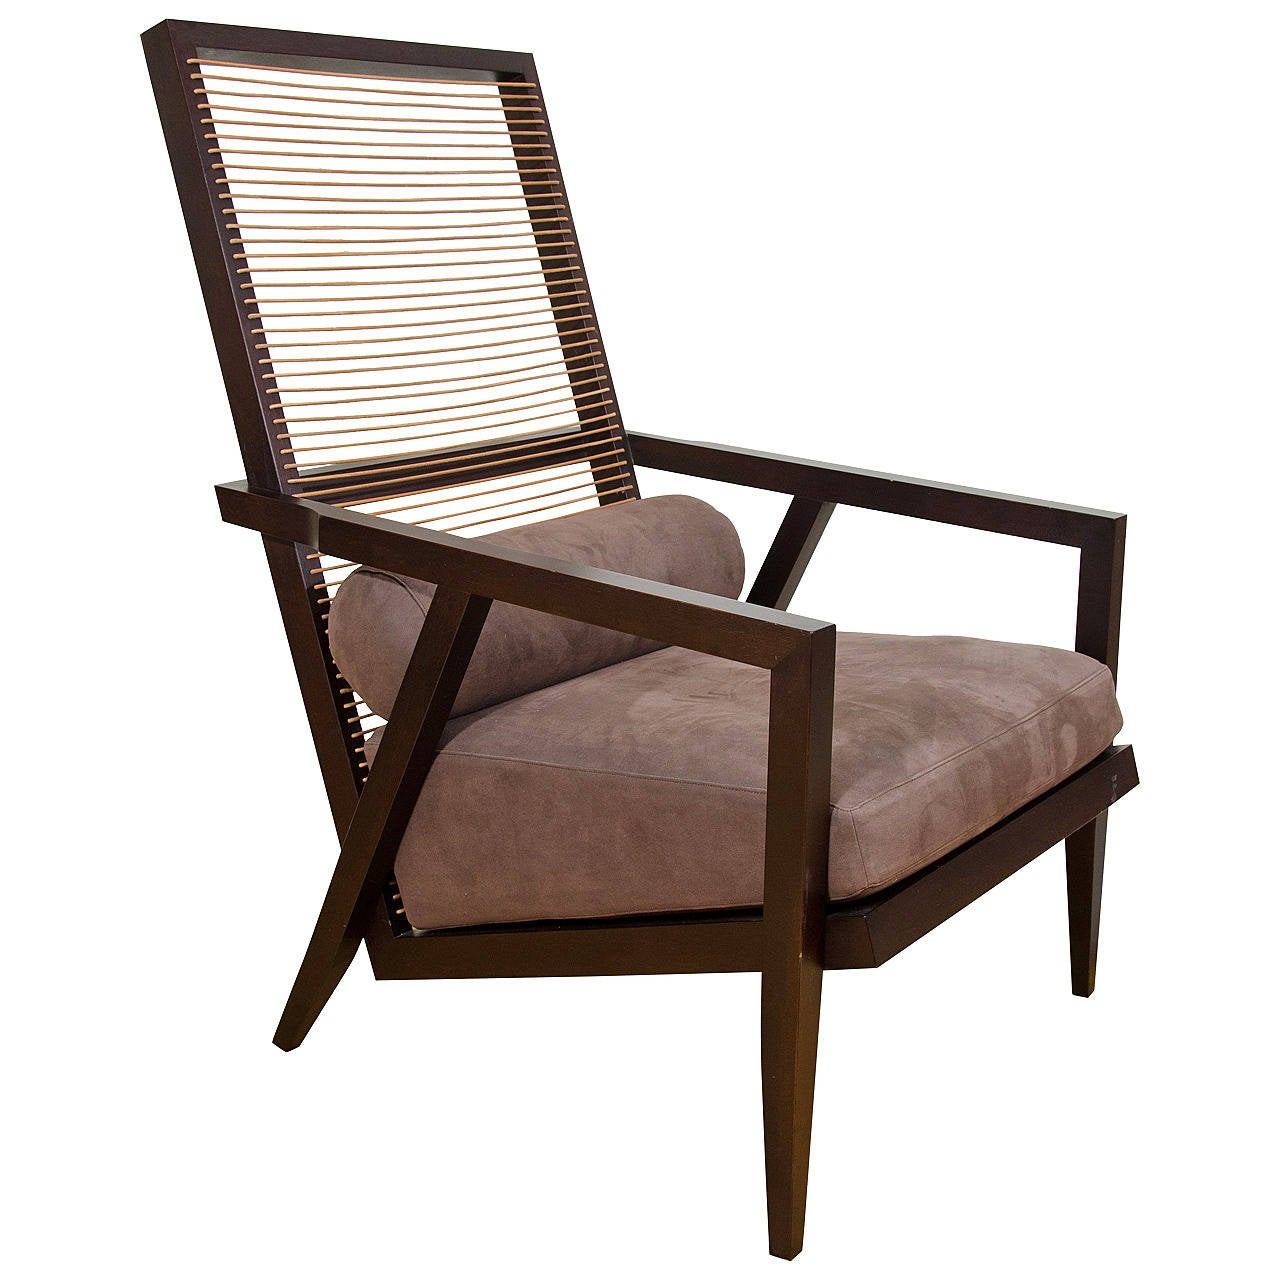 Pierantonio Bonacina Astoria High Back Lounge Chair At 1stdibs